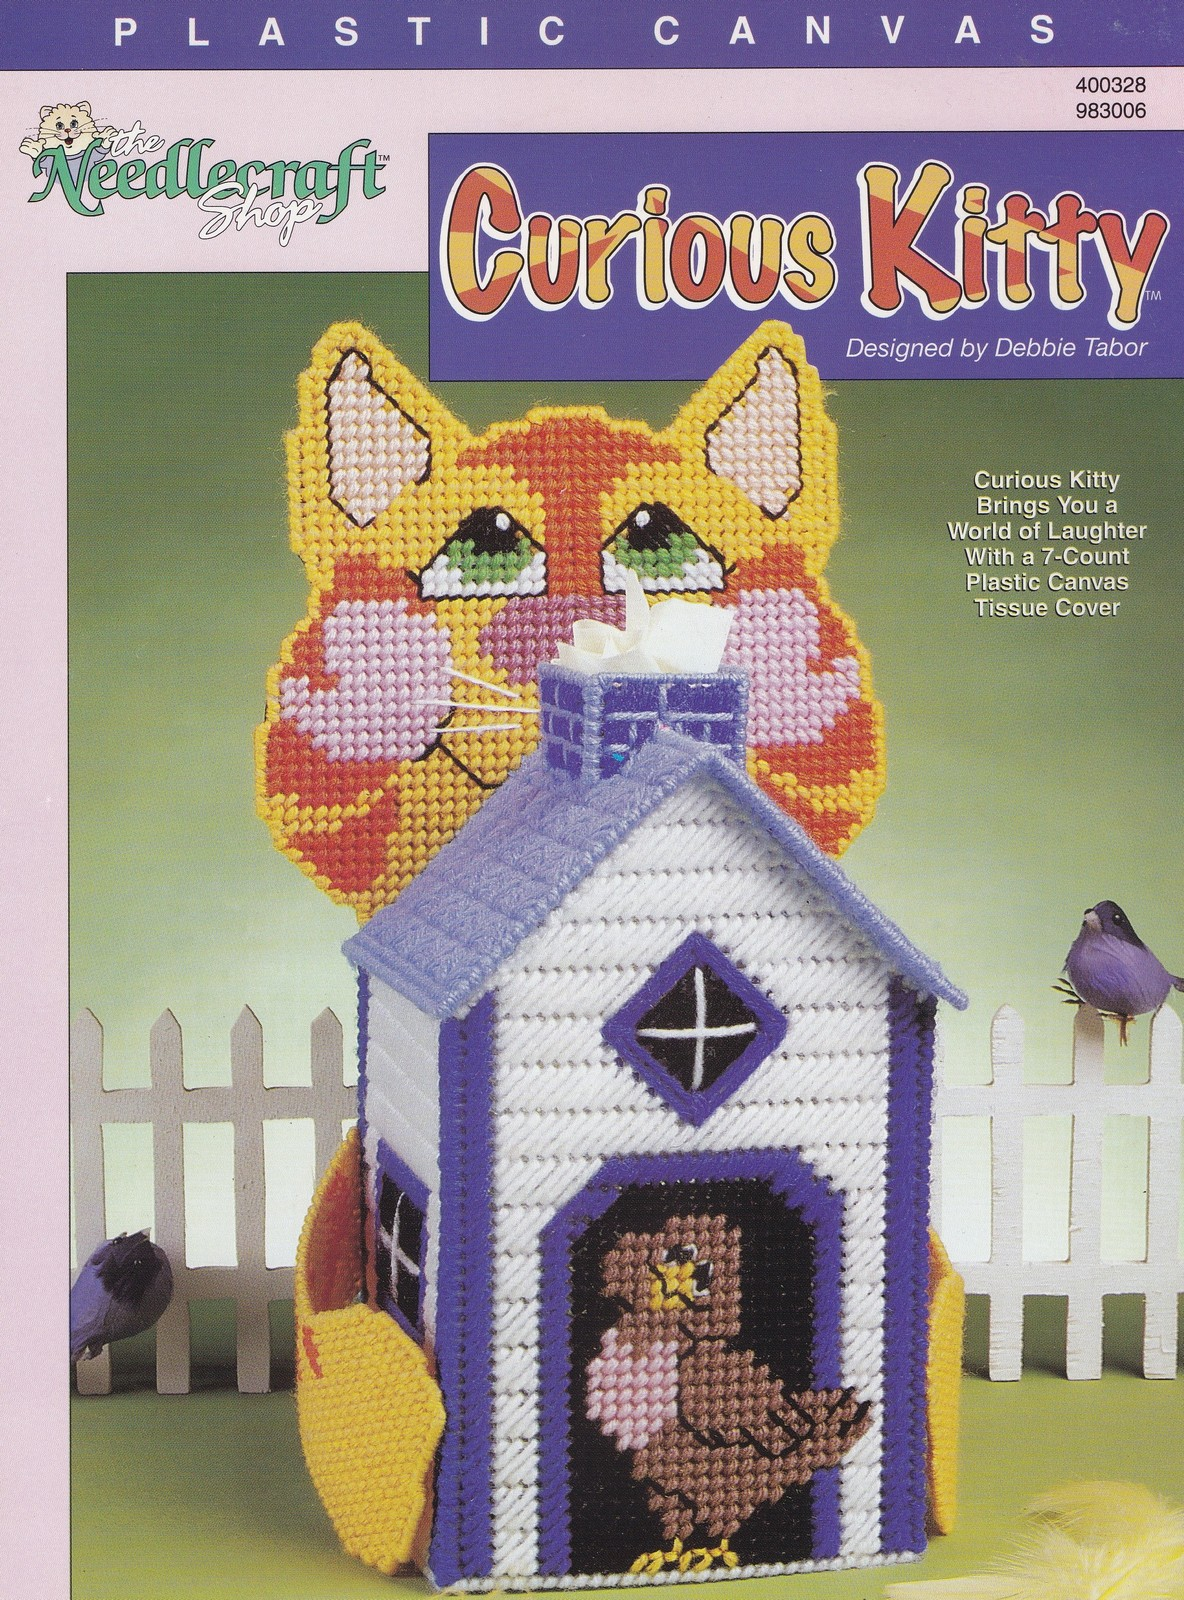 Curious Kitty, Cat Tissue Box Cover Plastic Canvas Pattern Leaflet TNS 983006